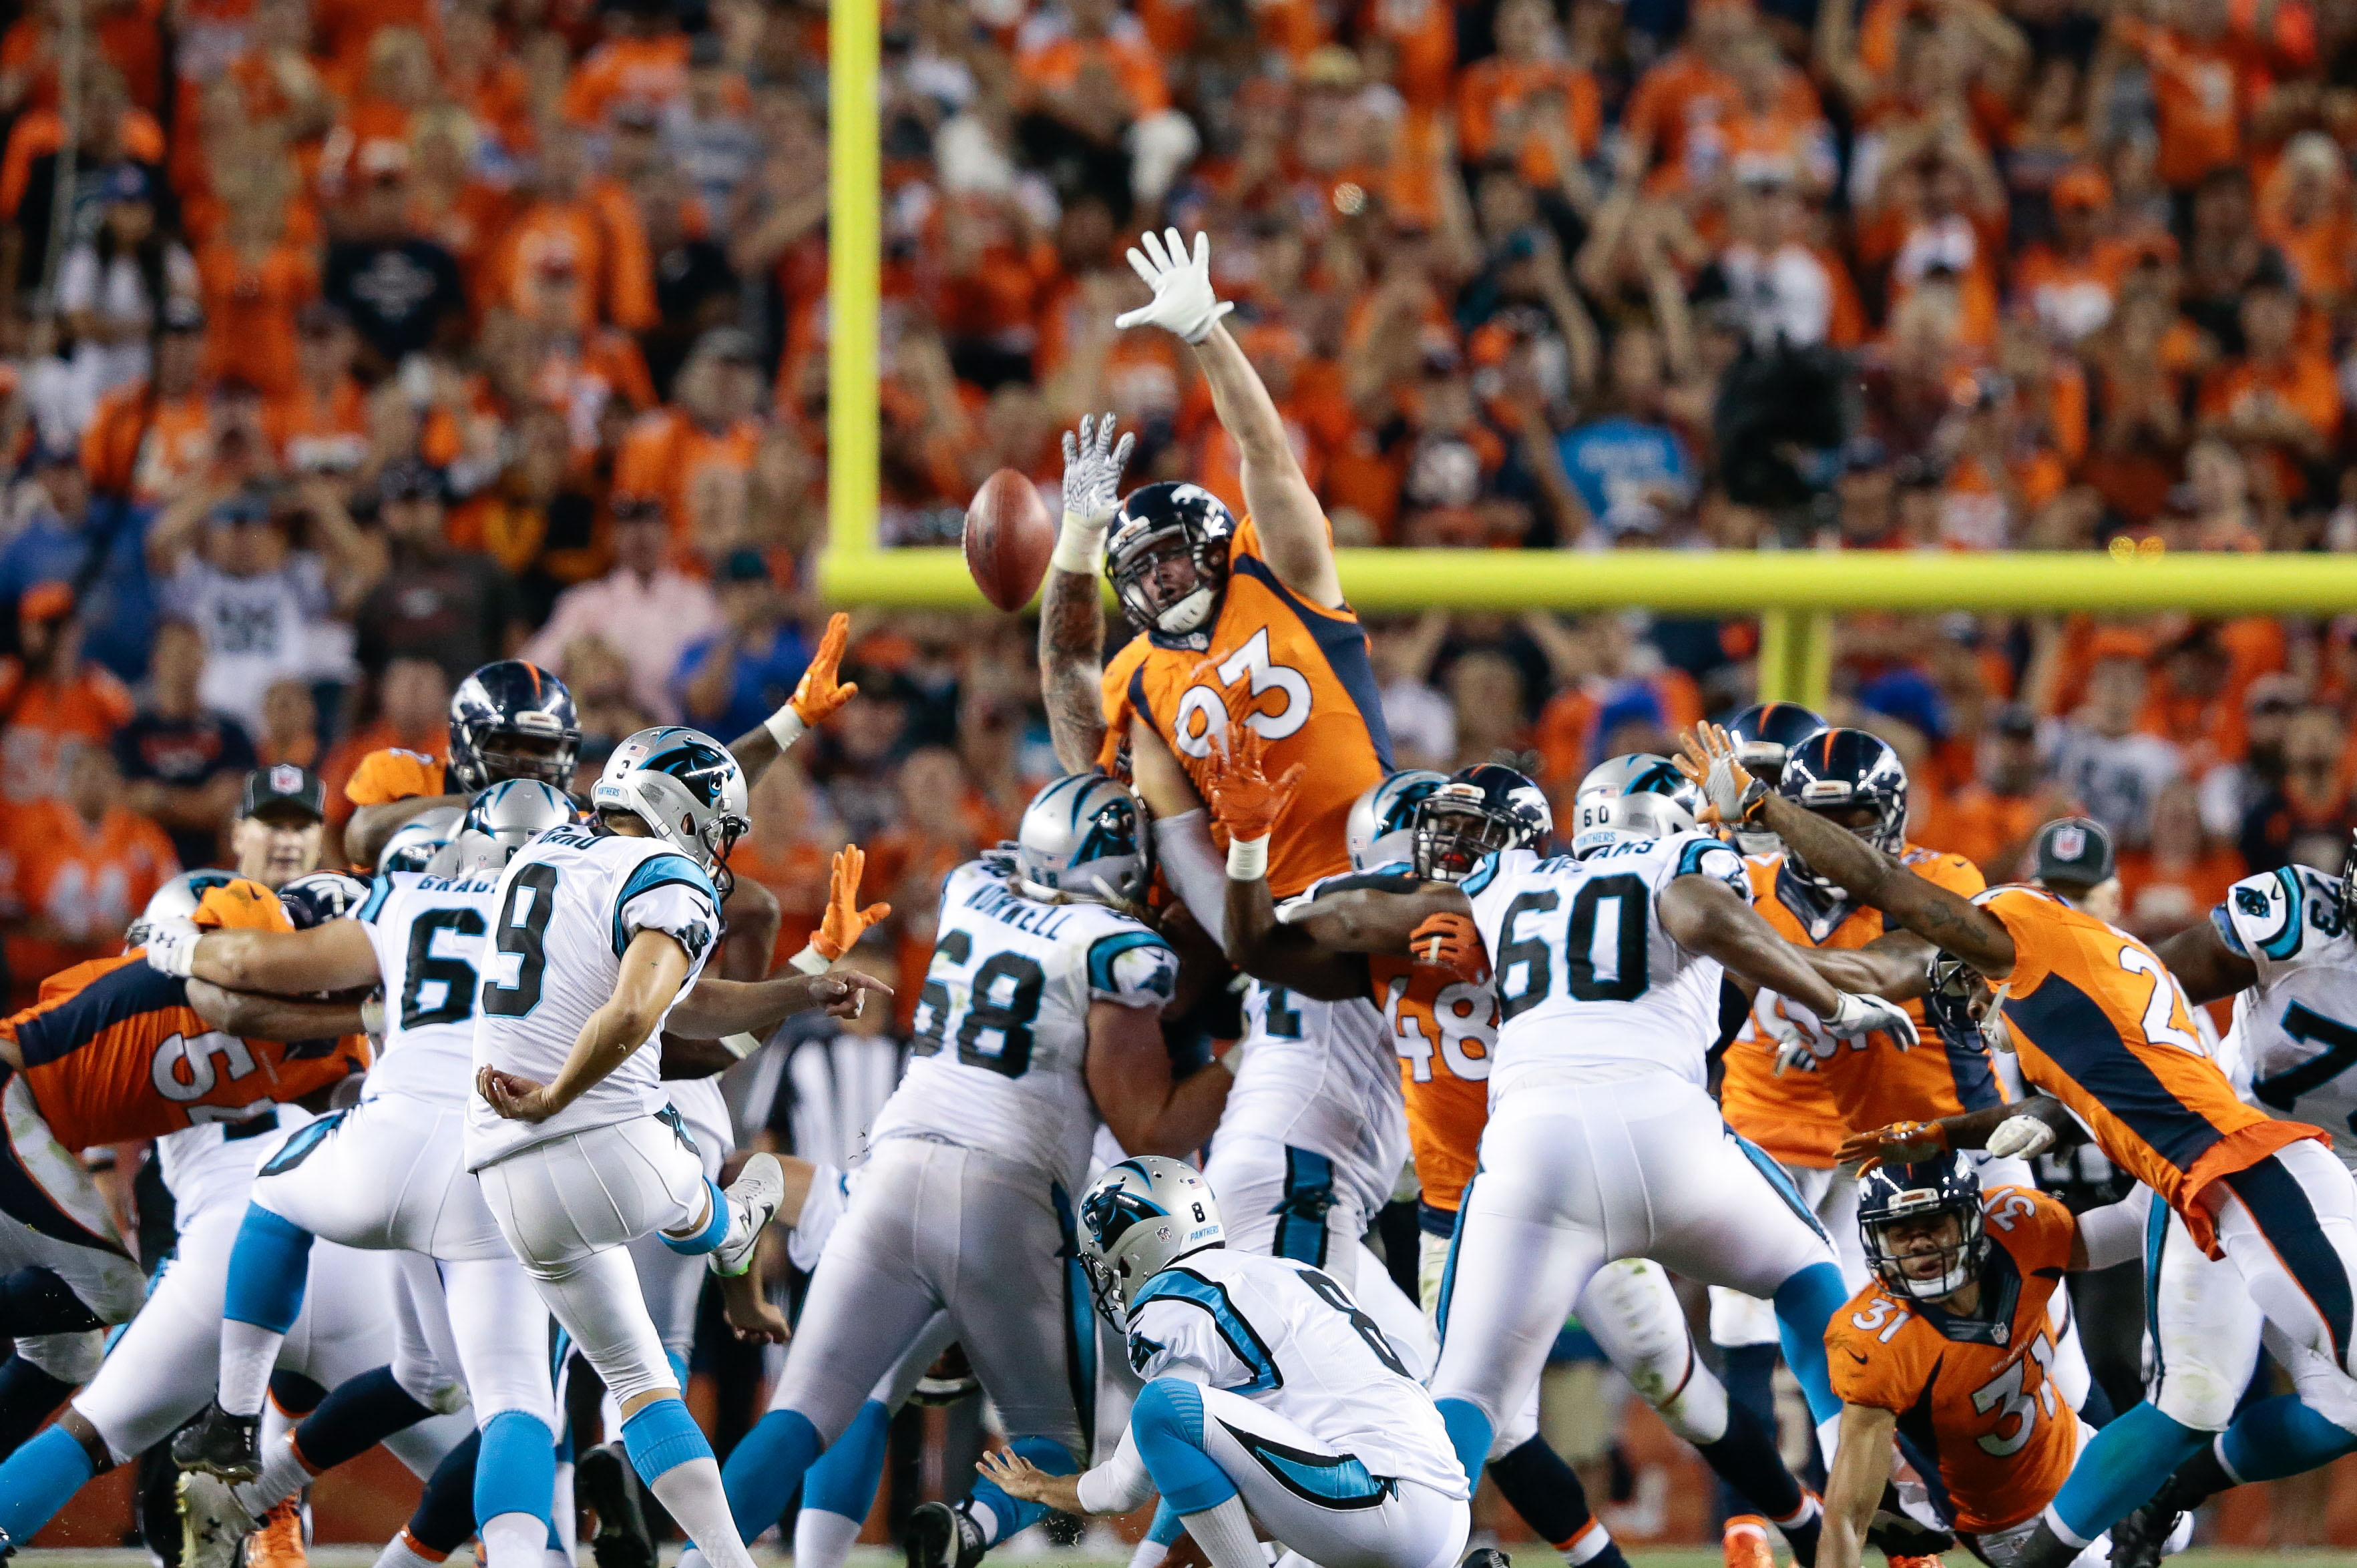 Sep 8, 2016; Denver, CO, USA; Denver Broncos Defensive End Jared Crick (93) Attempts To Block The Field Goal Attempt Of Carolina Panthers Kicker Graham Gano (9) In The Fourth Quarter At Sports Authority Field At Mile High. Mandatory Credit: Isaiah J. Downing-USA TODAY Sports